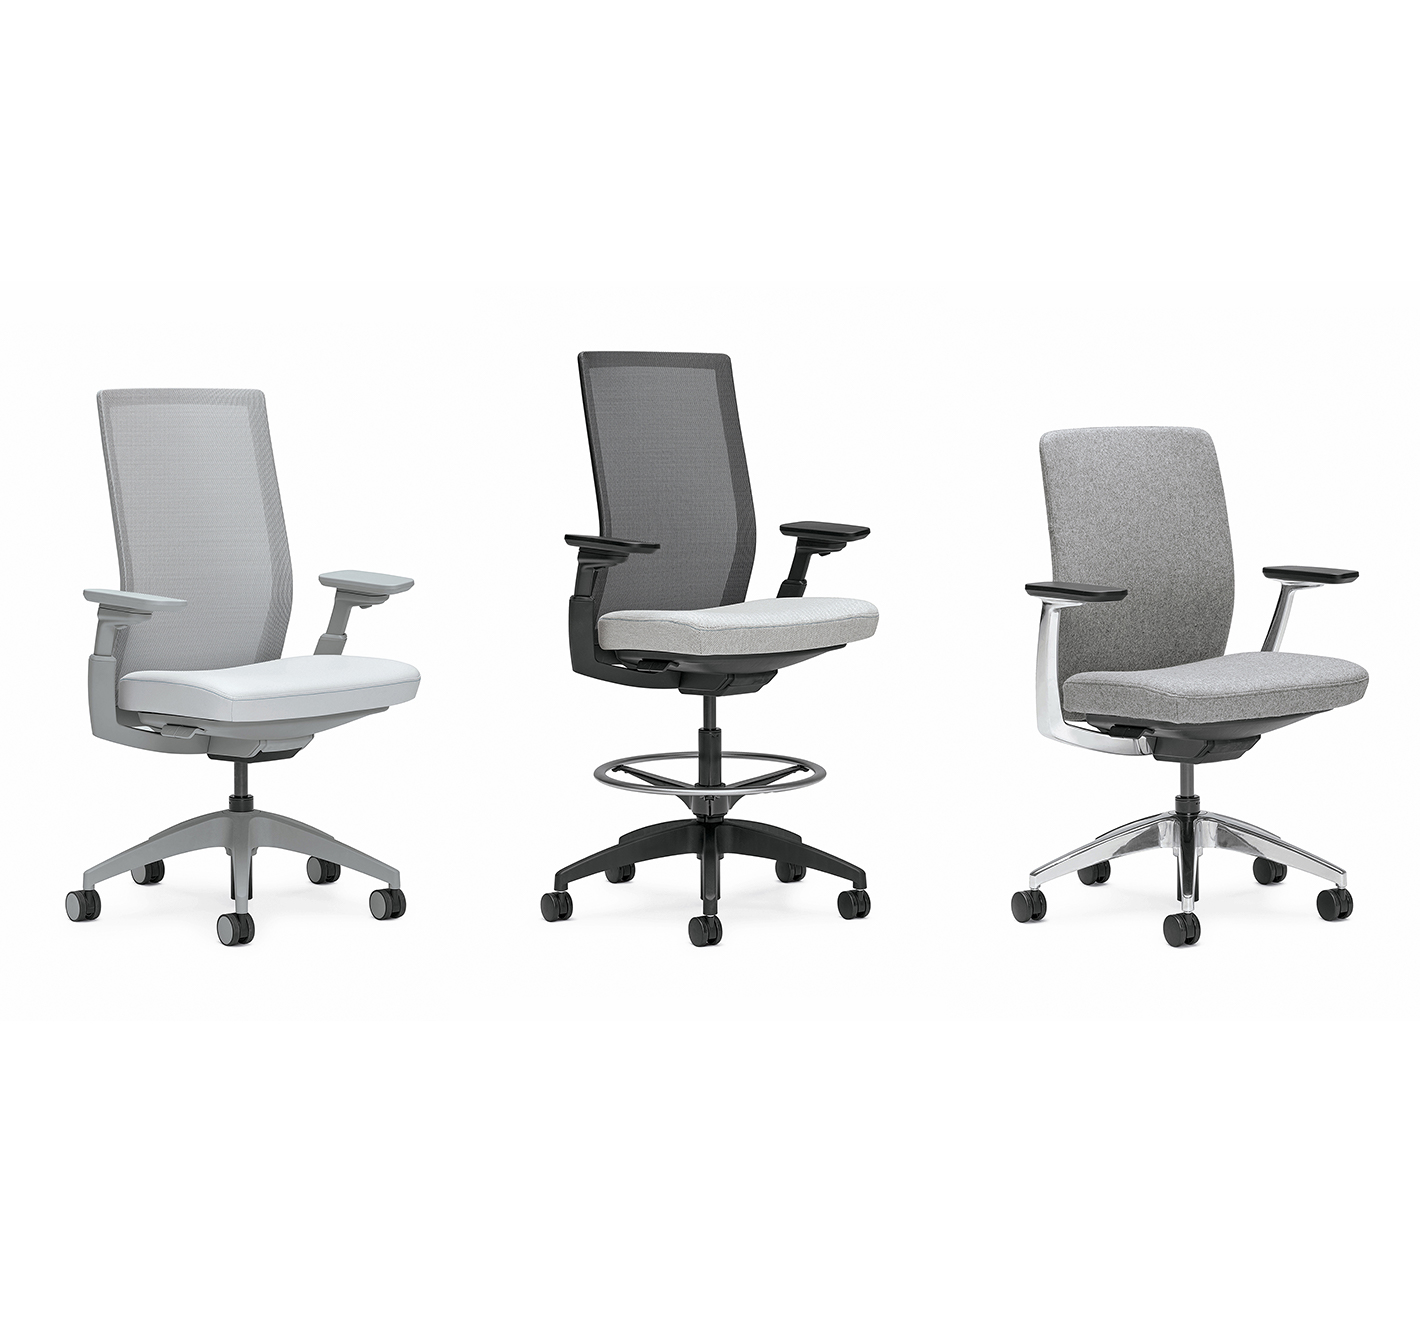 allsteel access chair best type of after back surgery evo studio fifield 1